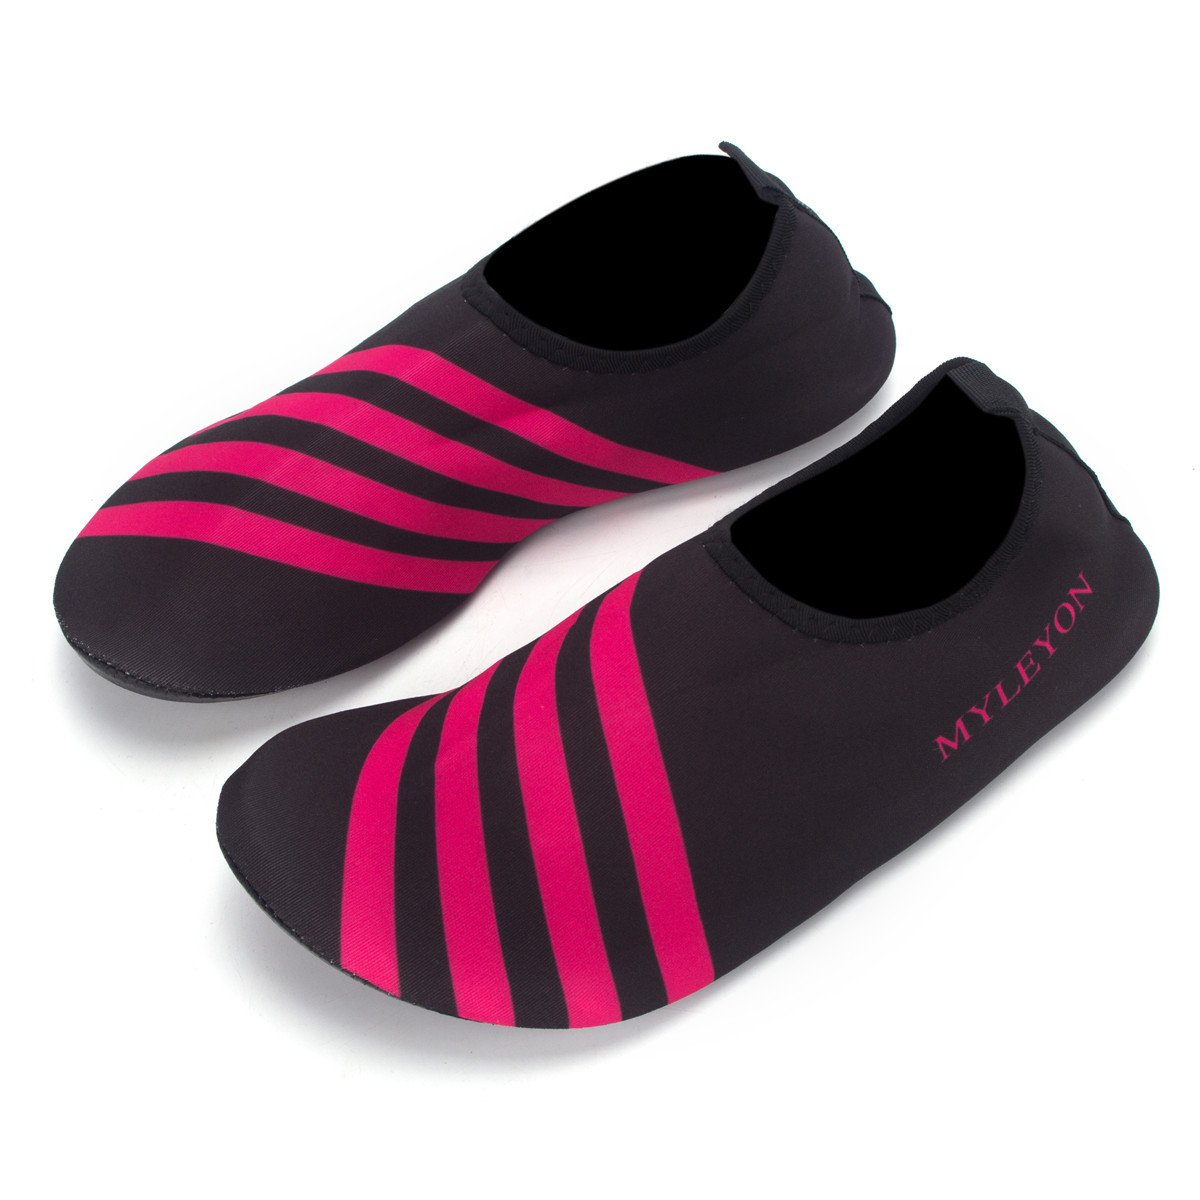 Haironline レディース B073RZCL92 42-43 M EU / 11-12 B(M) US|Rose Red & Black Rose Red & Black 42-43 M EU / 11-12 B(M) US